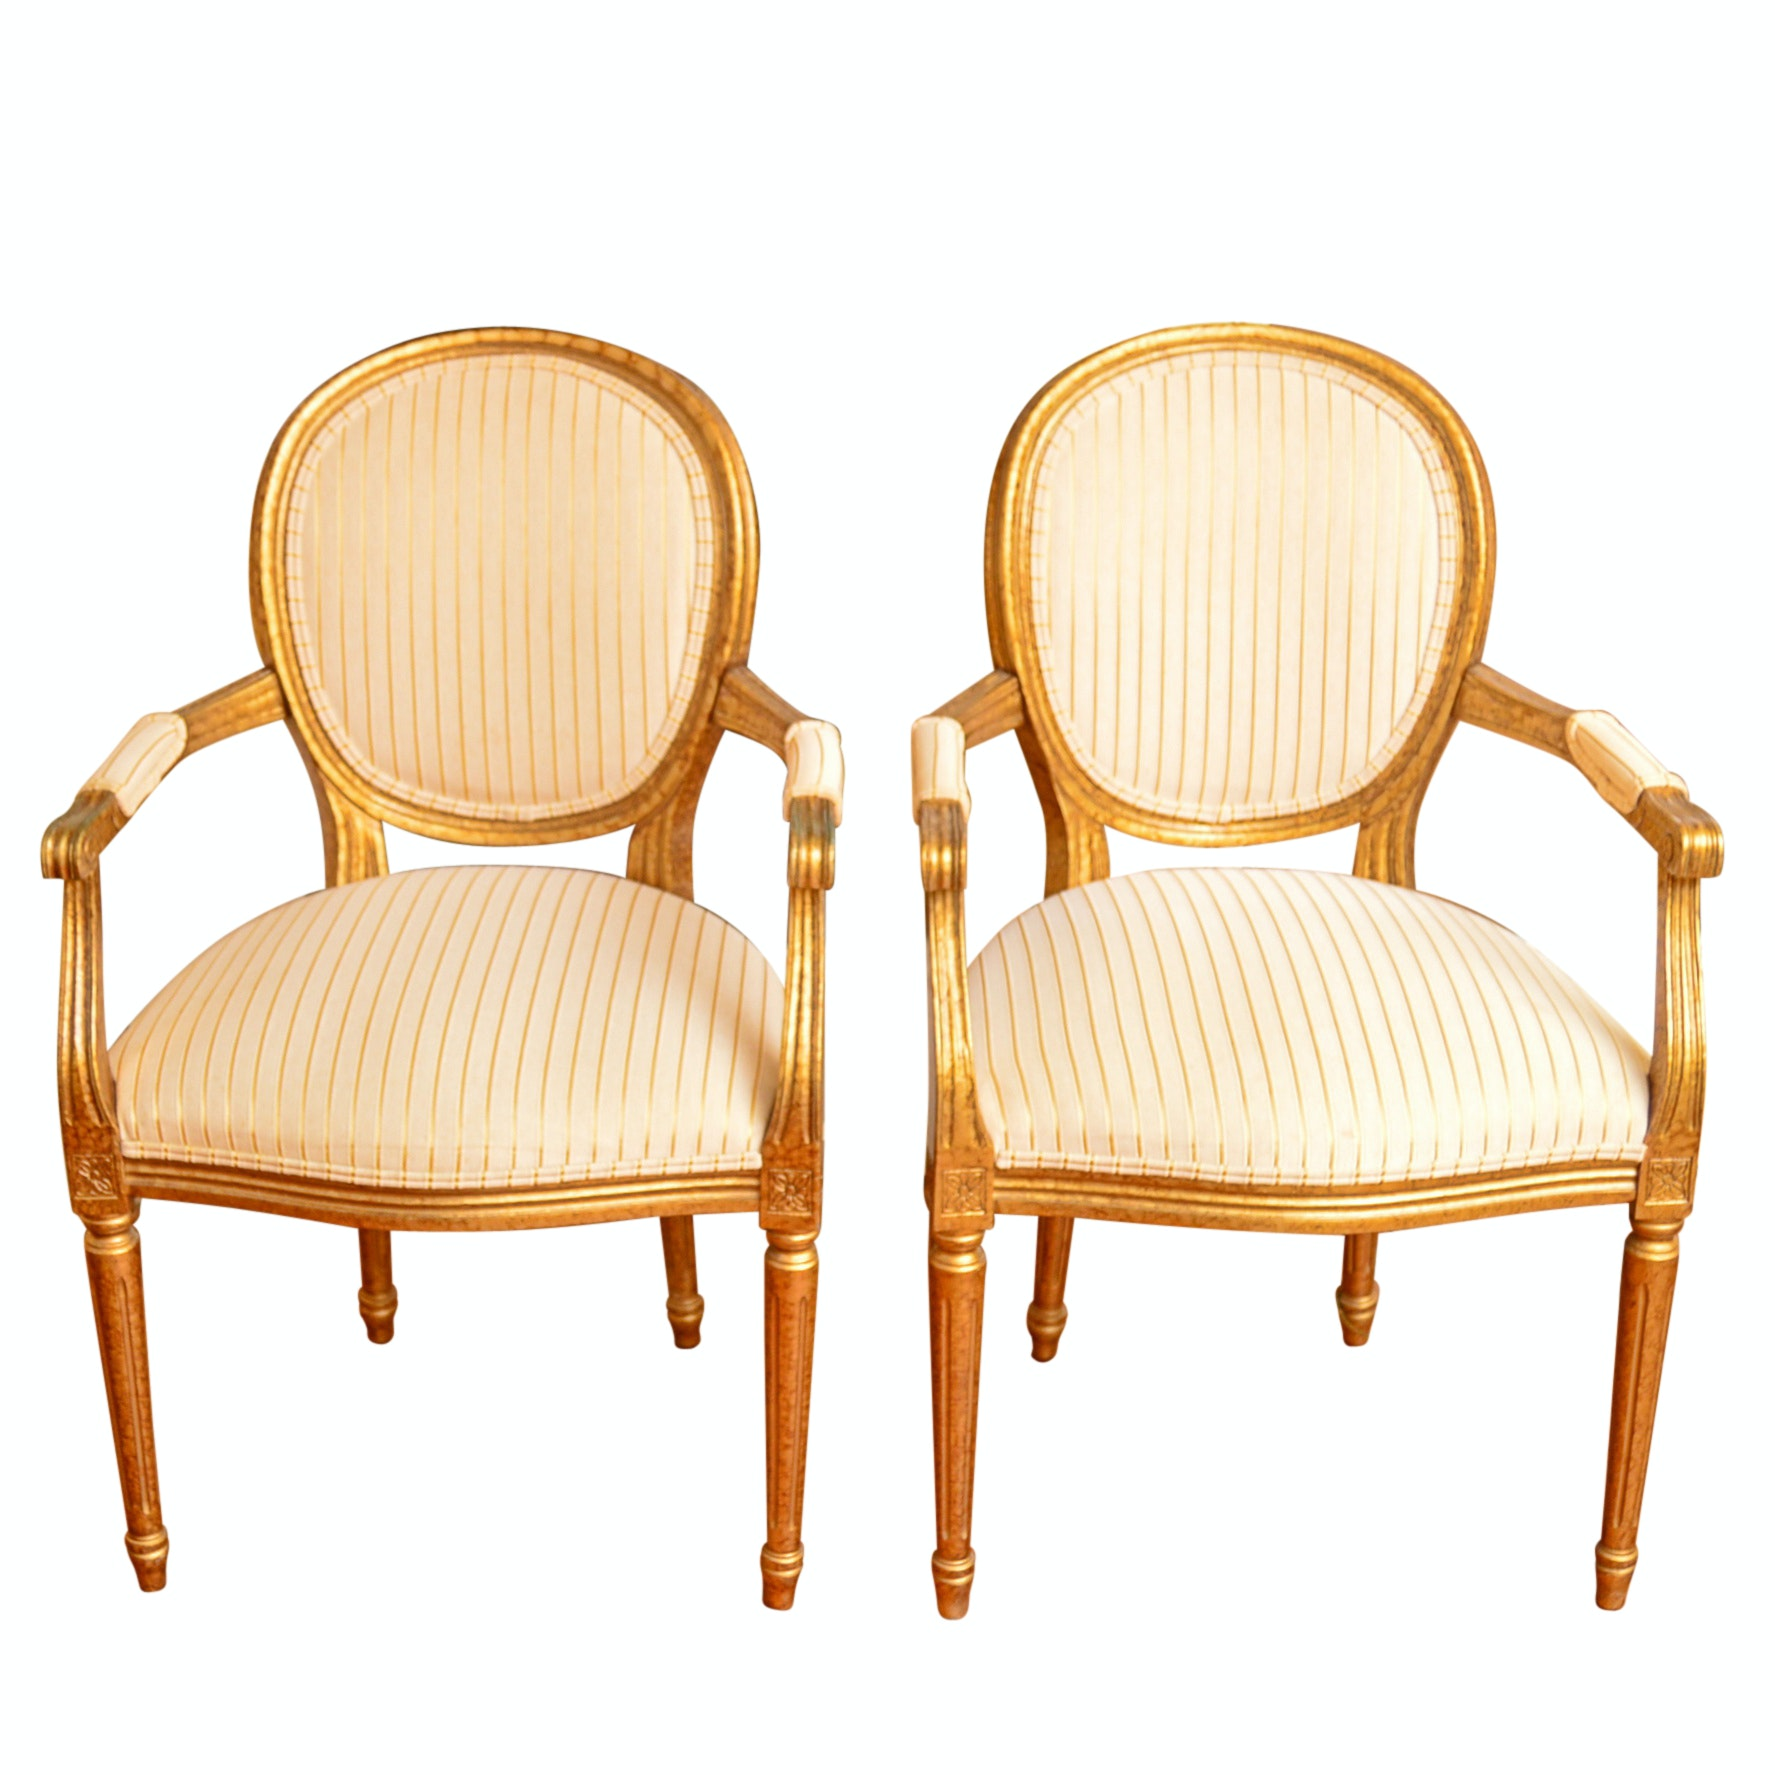 Pair of Italian Louis XVI Style Giltwood Fanteuils